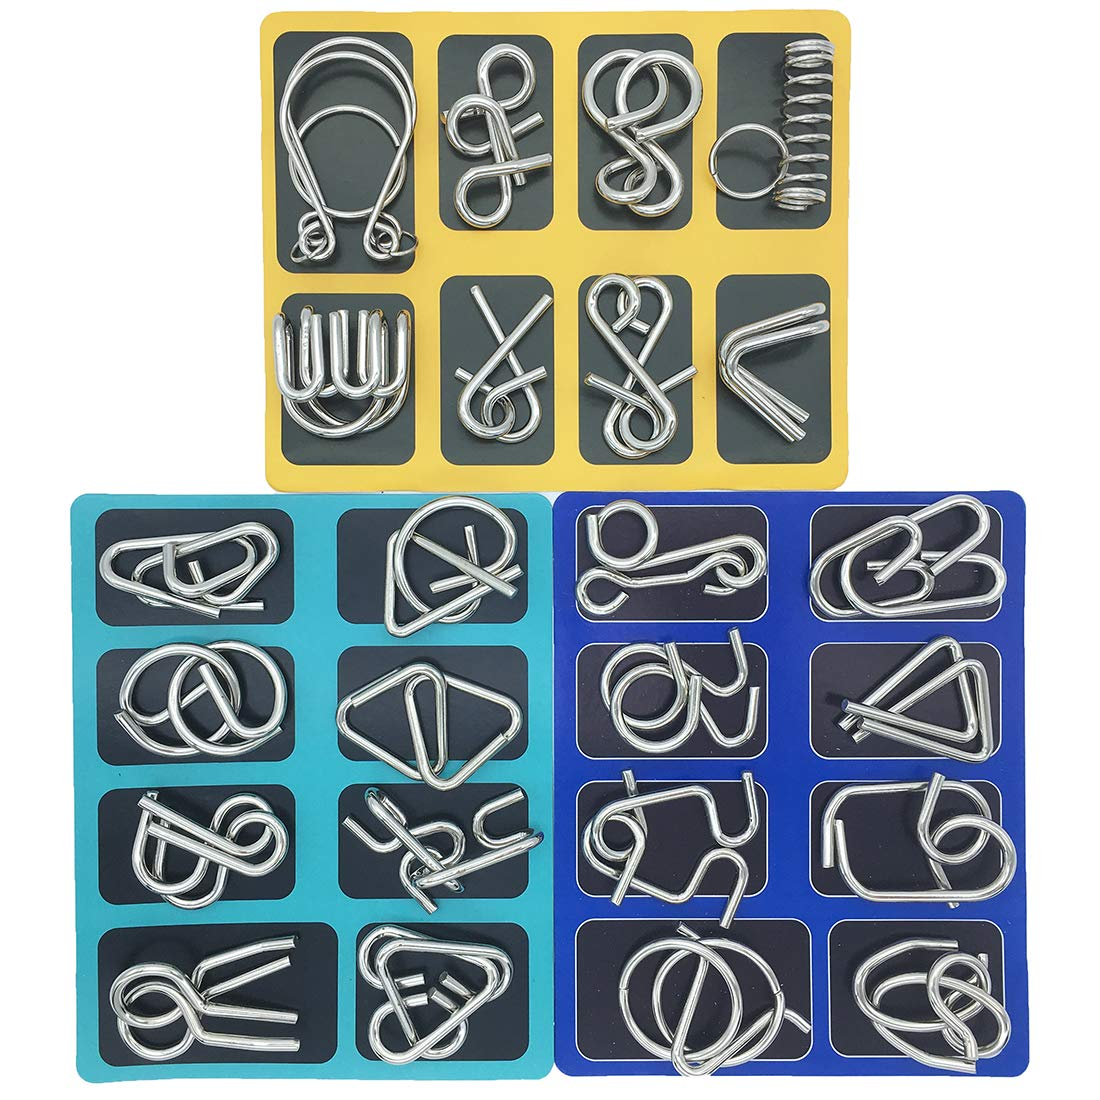 Kvvdi Set of 24 Brain Teasers Metal Puzzles for Adults Nail Puzzle Brain Toys for for Dementia Patients